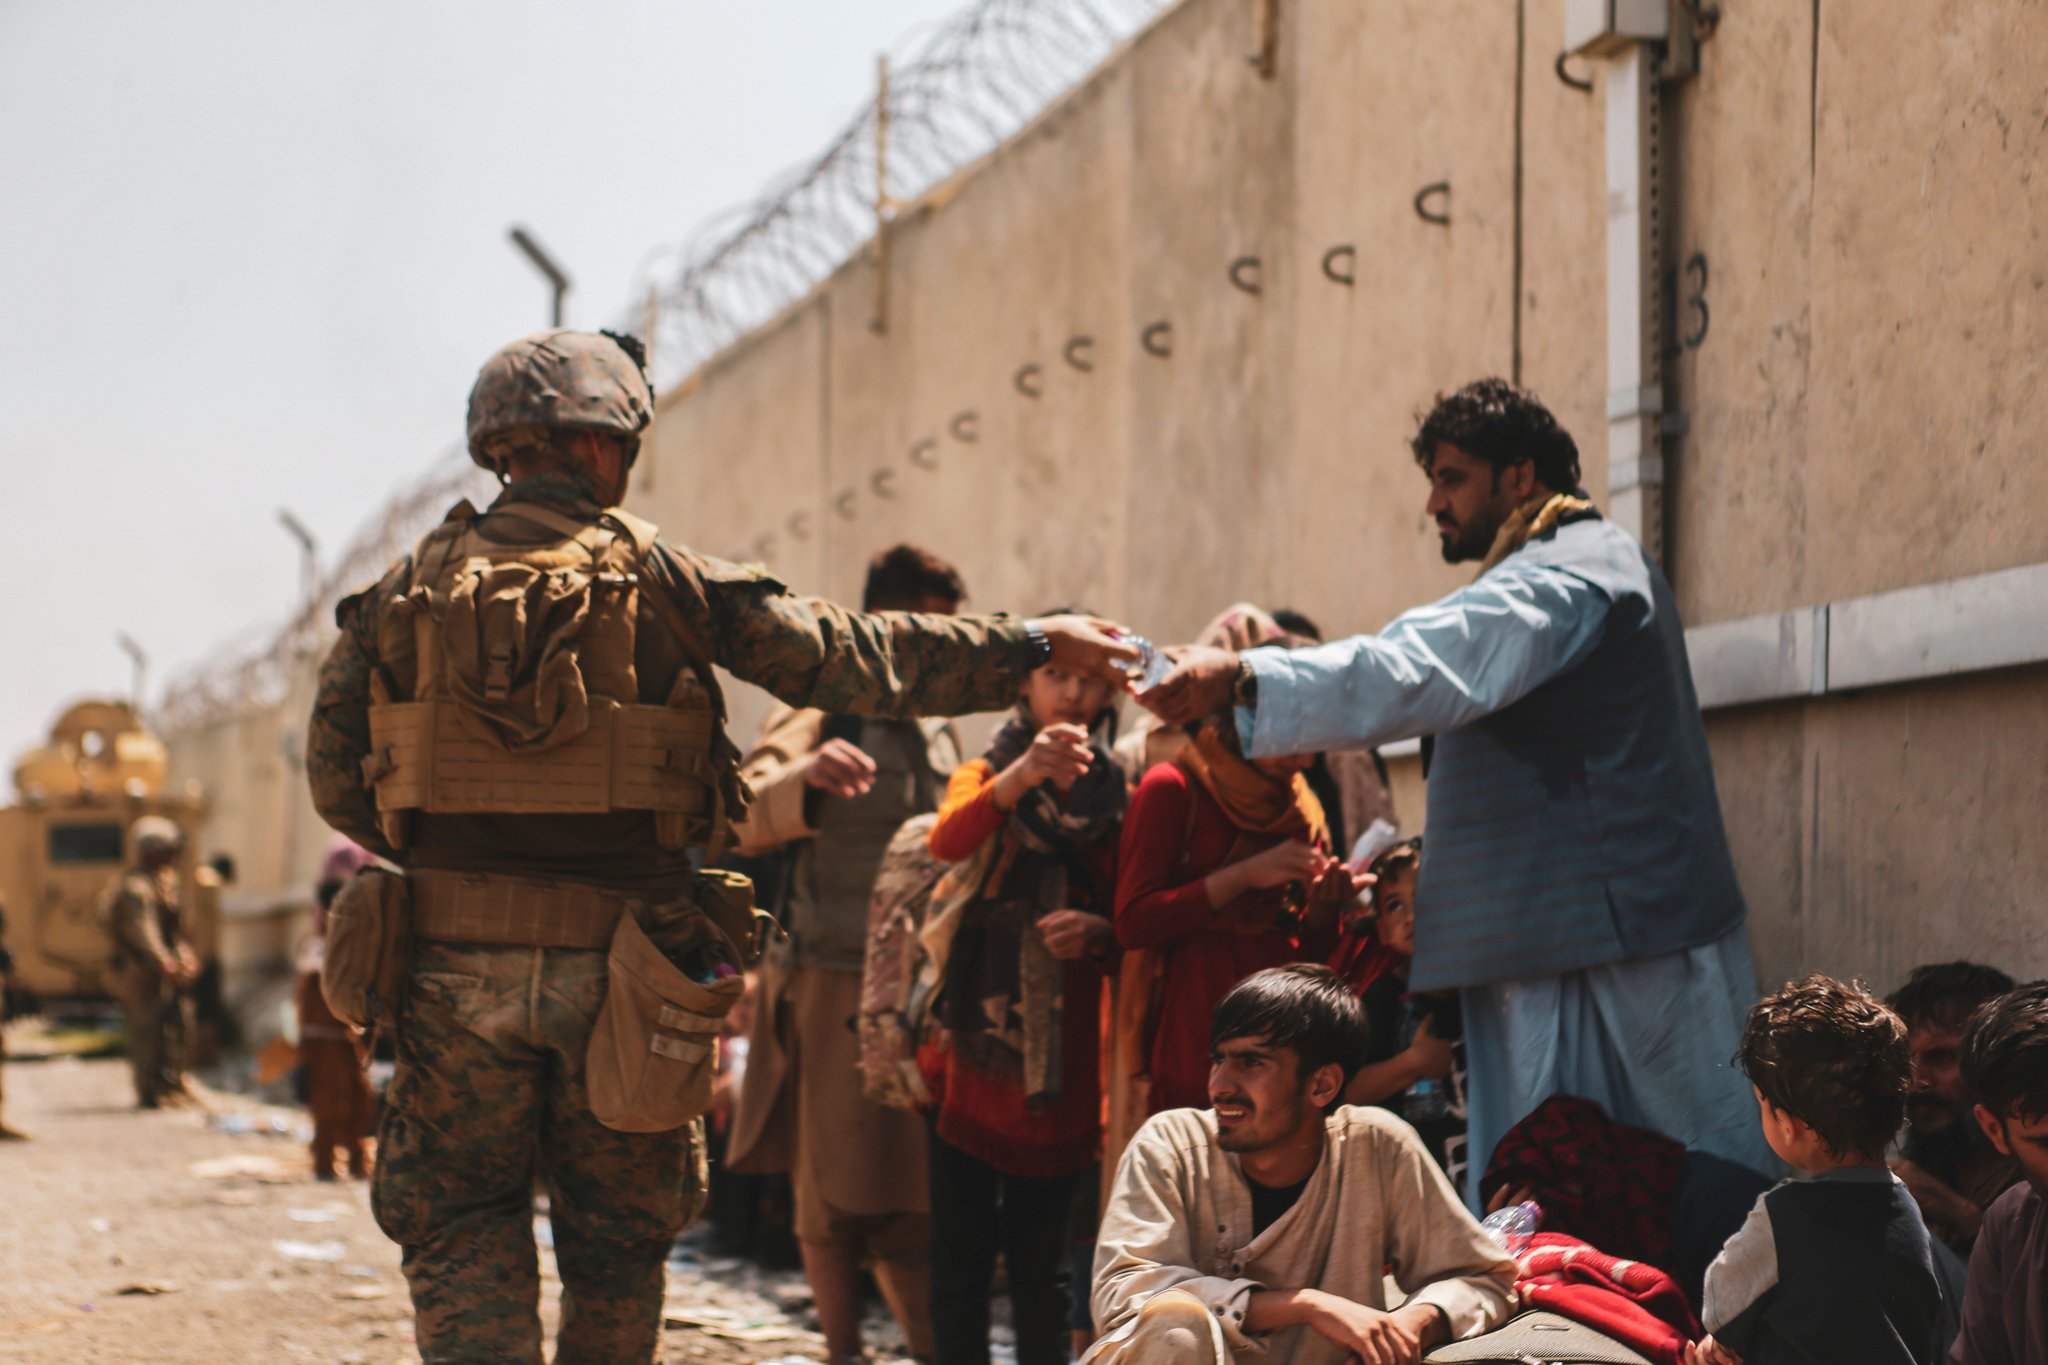 HAMID KARZAI INTERNATIONAL AIRPORT, AFGHANISTAN - AUGUST 22: This handout image shows A Marine with the 24th Marine Expeditionary unit (MEU) passes out water to evacuees during an evacuation at Hamid Karzai International Airport, Kabul, Afghanistan, Aug. 22. U.S. service members are assisting the Department of State with a Non-combatant Evacuation Operation (NEO) in Afghanistan. (Photo by Sgt. Isaiah Campbell / U.S. Marine Corps via Getty Images)